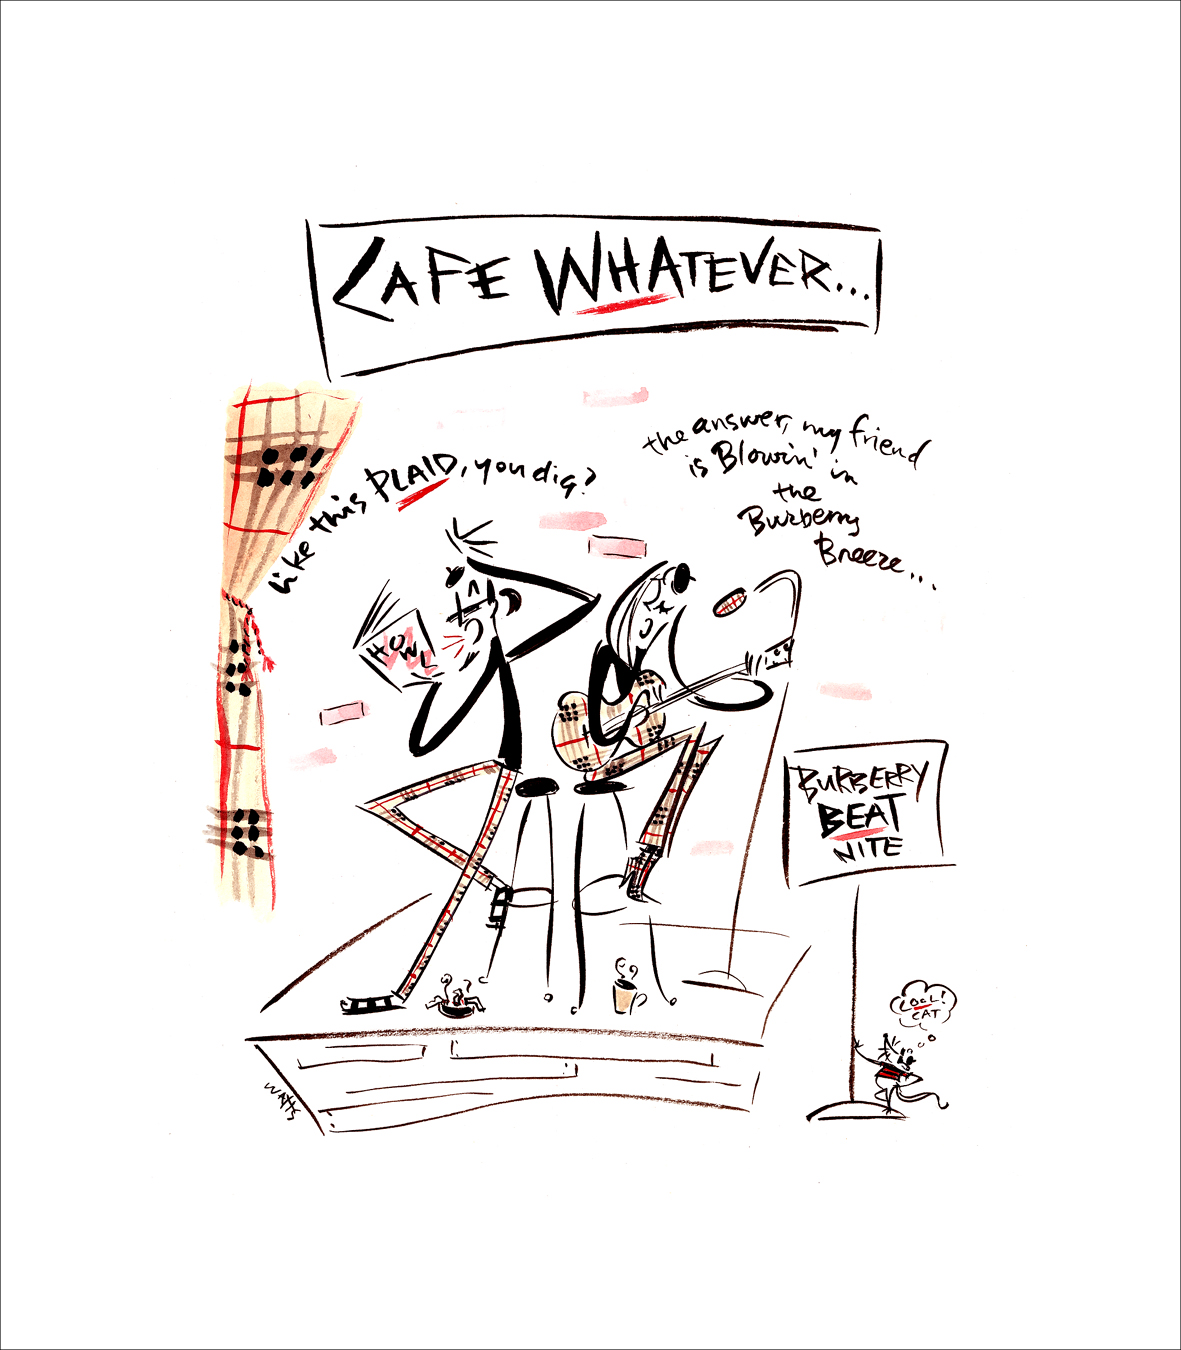 CAFEWHAT